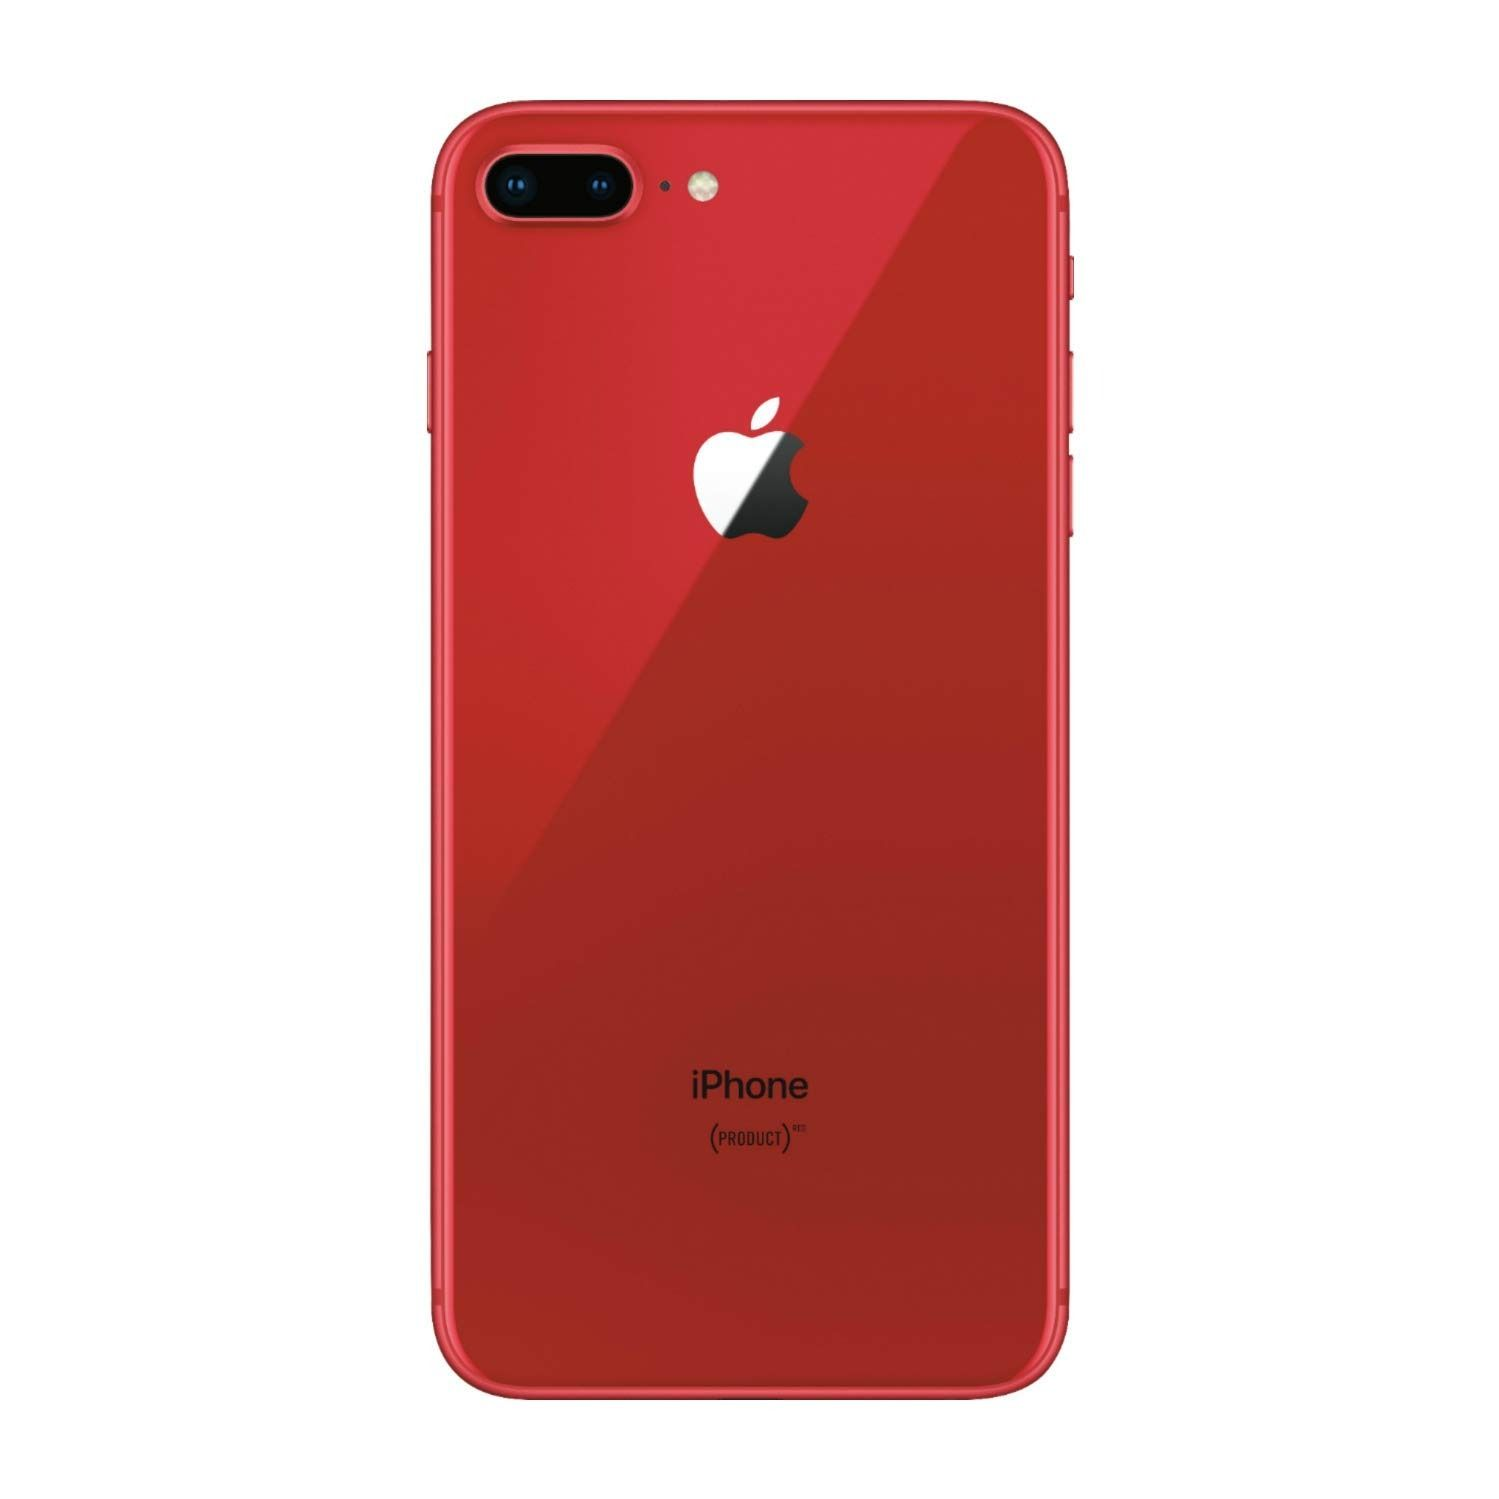 Iphone 8 Plus 64gb Buy Now 499 99 Apple Iphone 8 Plus 64gb Red Special Edition Product Red A1897 Factory Unlocked Gsm Only No Cdma Renewe Celulares